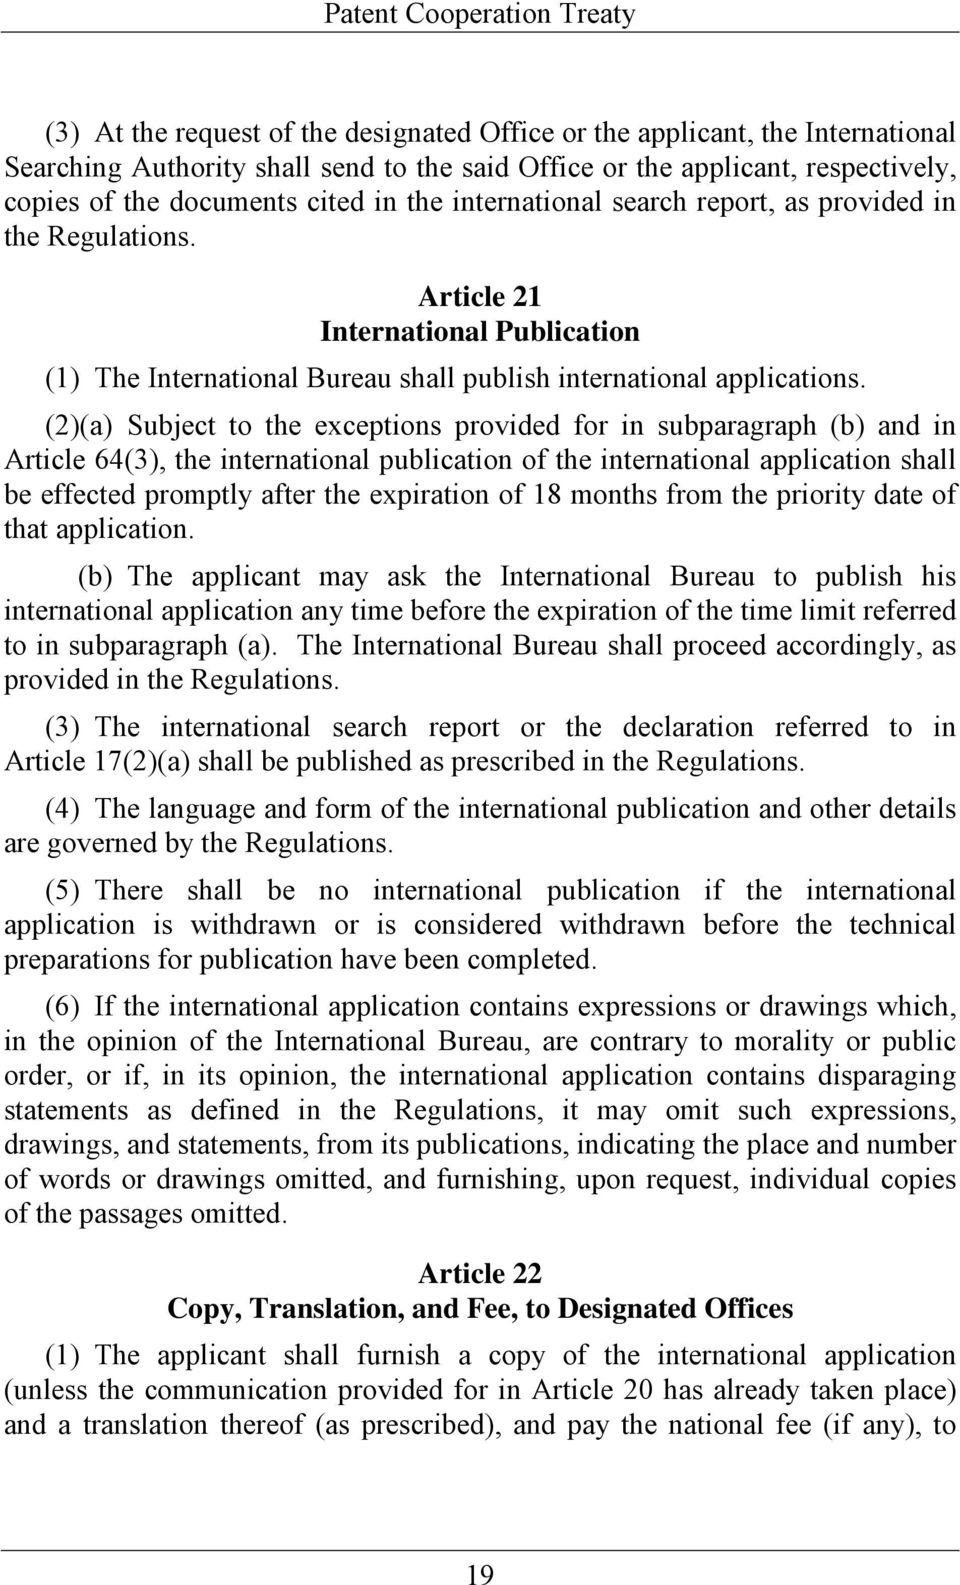 (2)(a) Subject to the exceptions provided for in subparagraph (b) and in Article 64(3), the international publication of the international application shall be effected promptly after the expiration